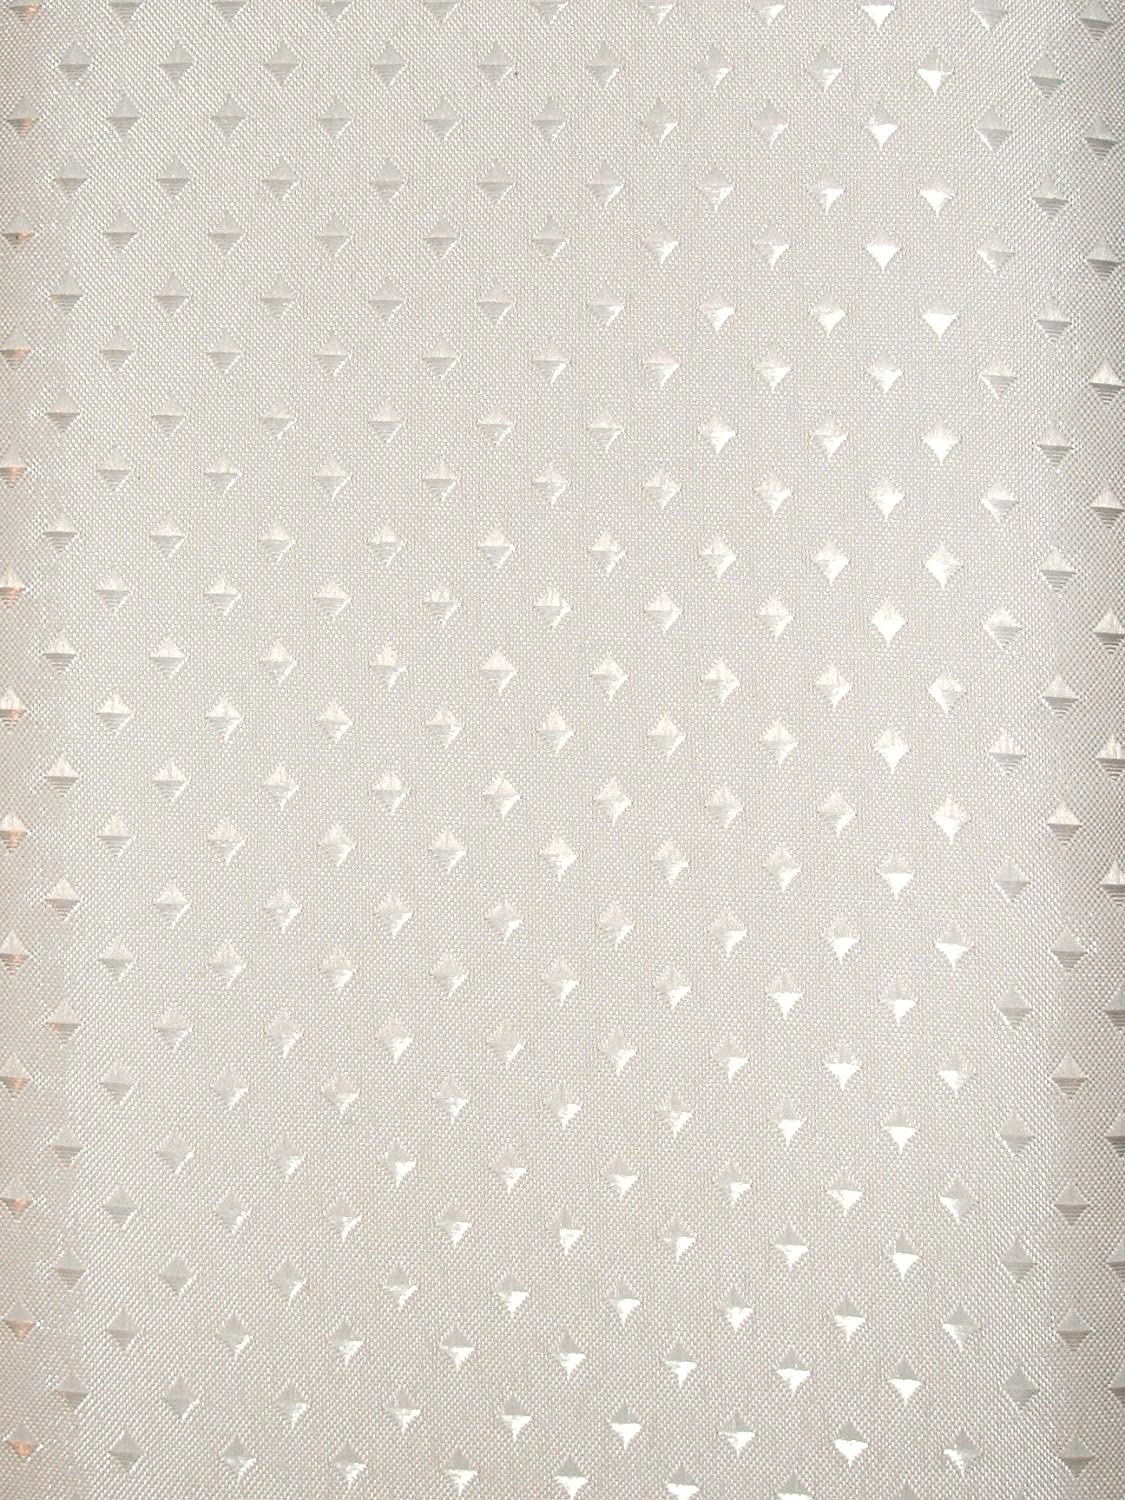 High Quality Fabric Shower Curtain size: 240cm Extra wide x 180cm long- White with small satin Diamond Pattern - White - Weighted Hem Euroshowers